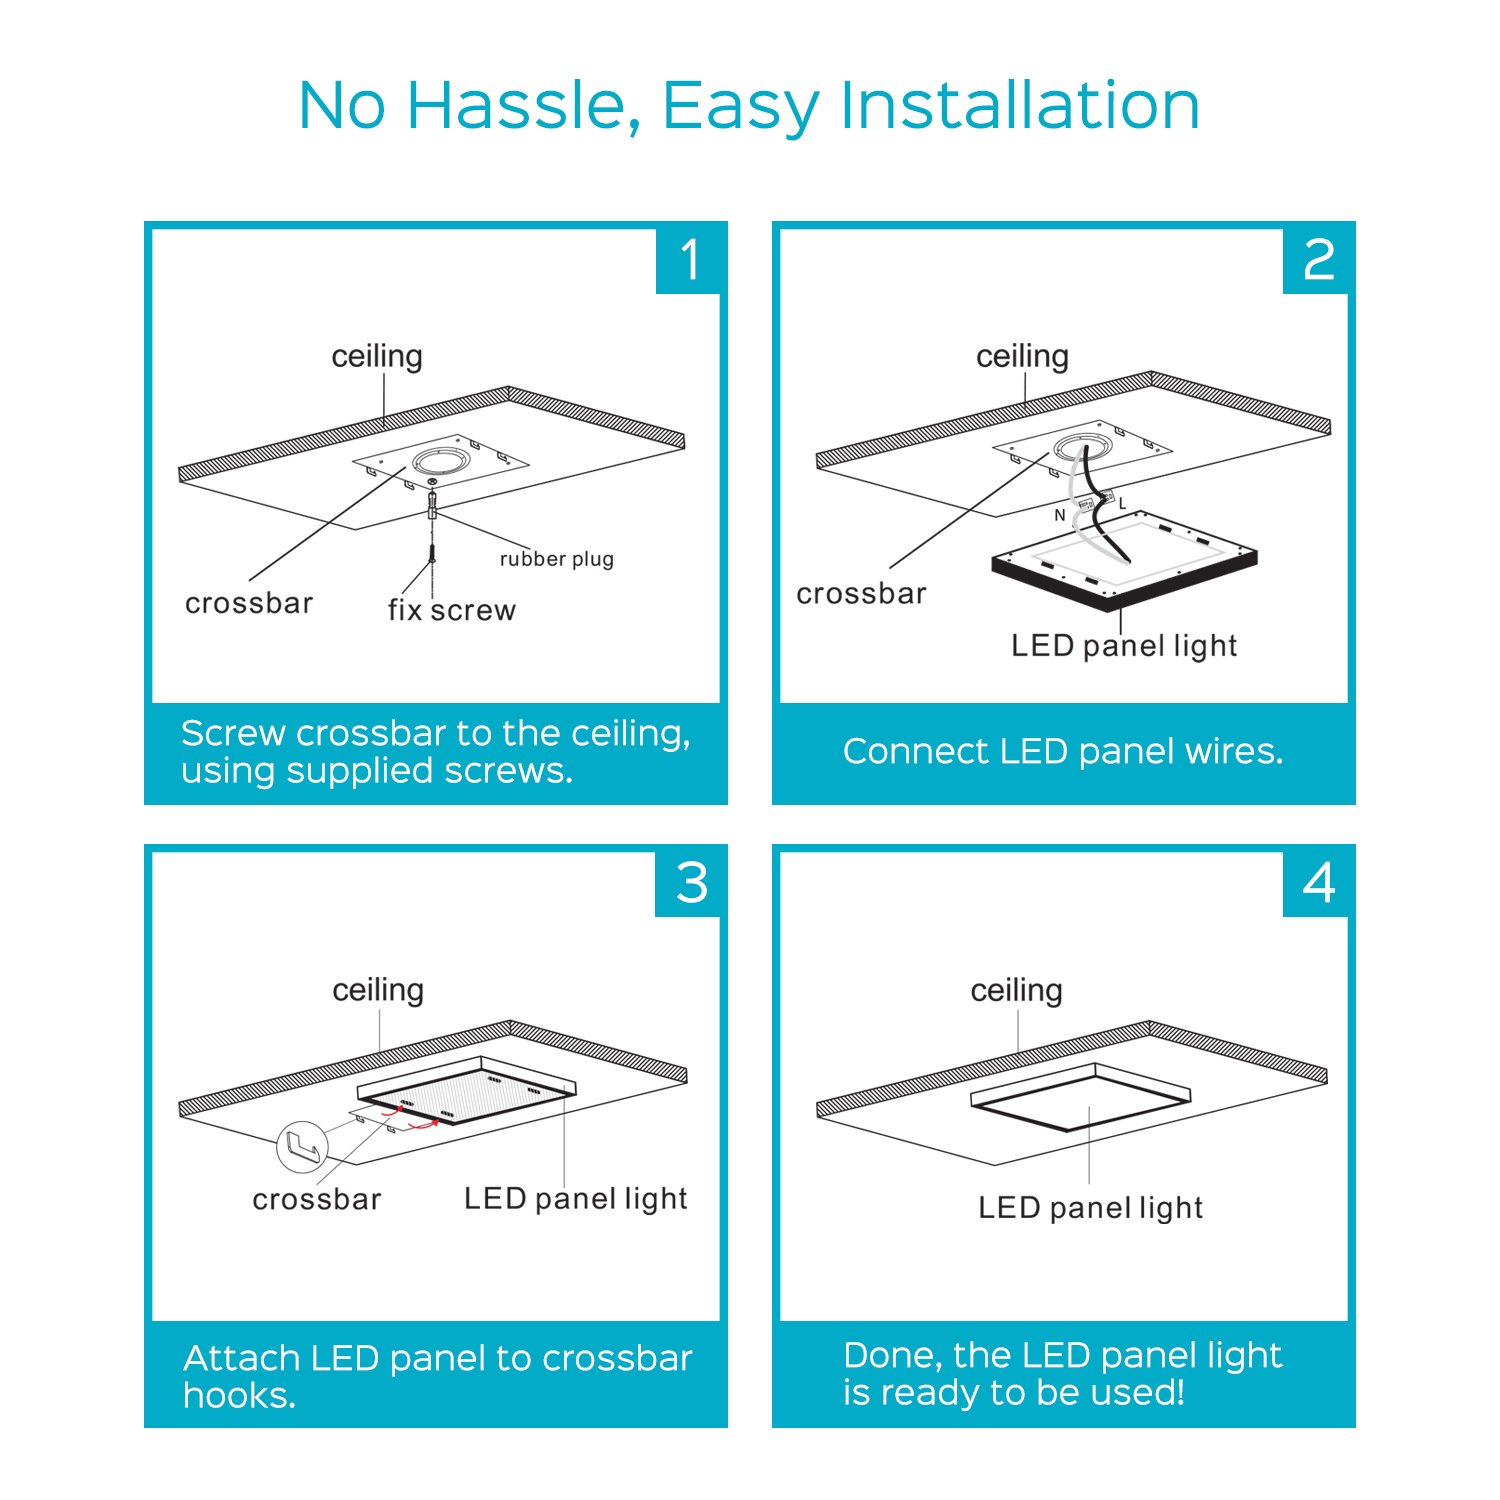 Led Panel Light Wiring Diagram - Trusted Wiring Diagrams